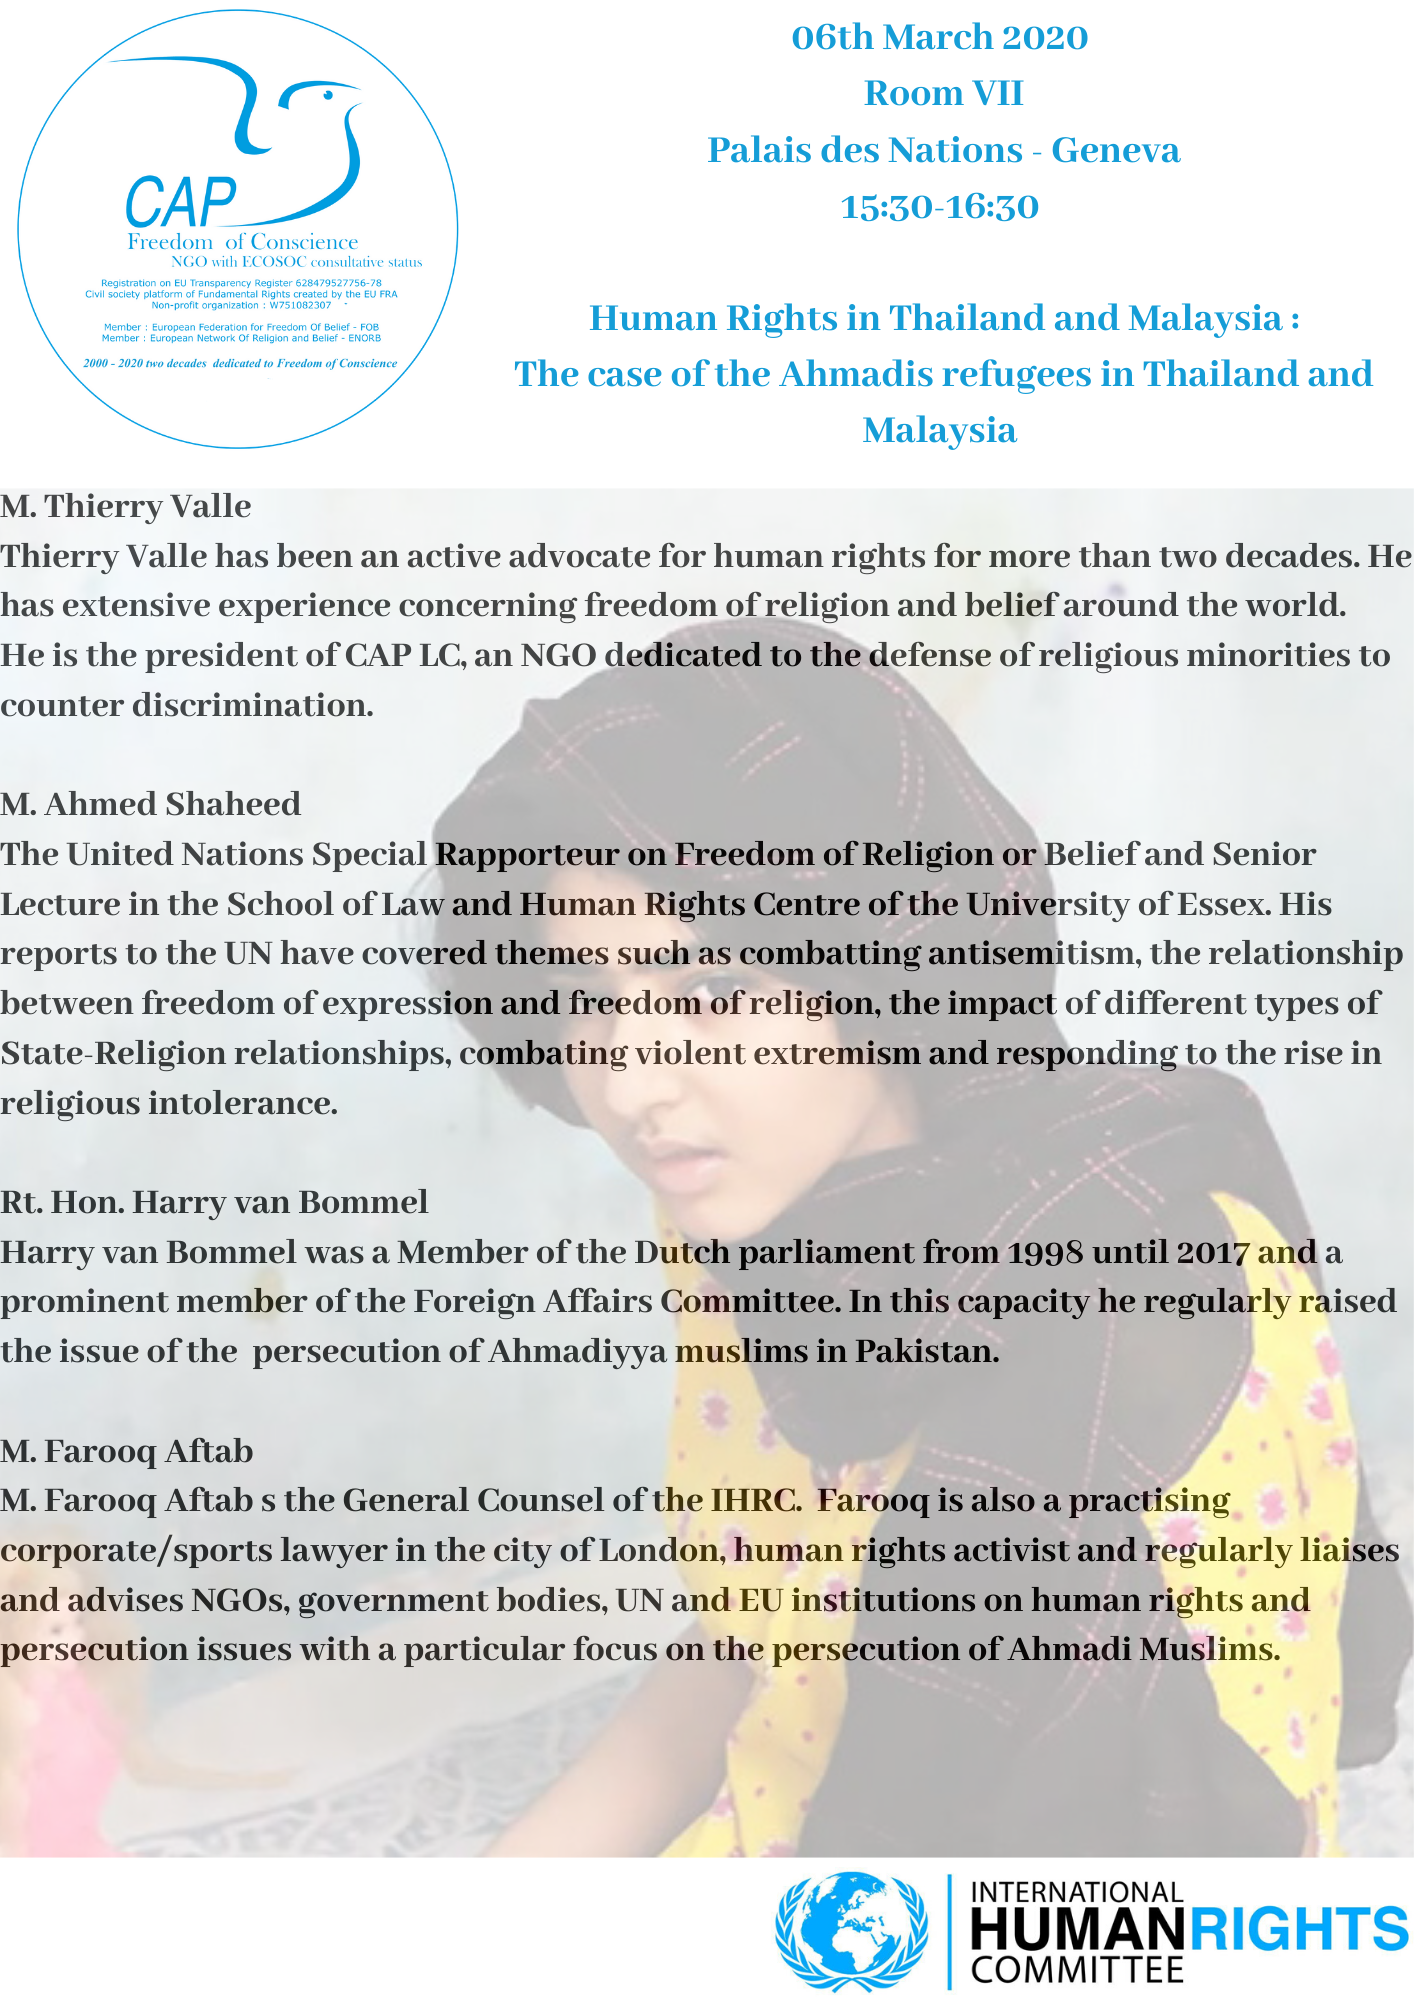 Human Rights in Thailand and Malaysia : The case of the Ahmadis refugees in Thailand and Malaysia